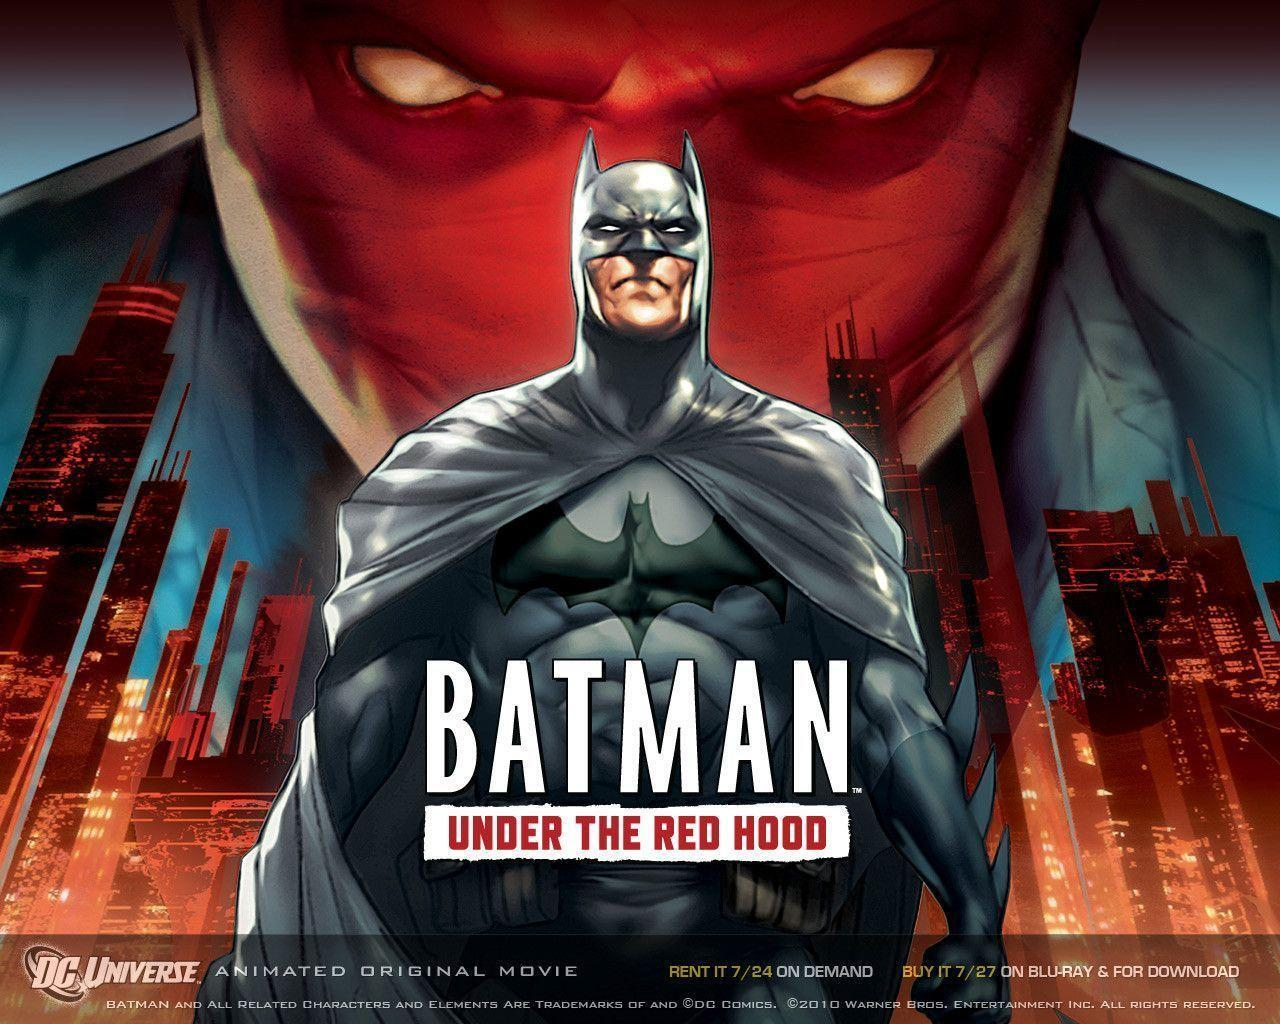 Image batman under the red hood ii by jon t69. Jpg | batman wiki.